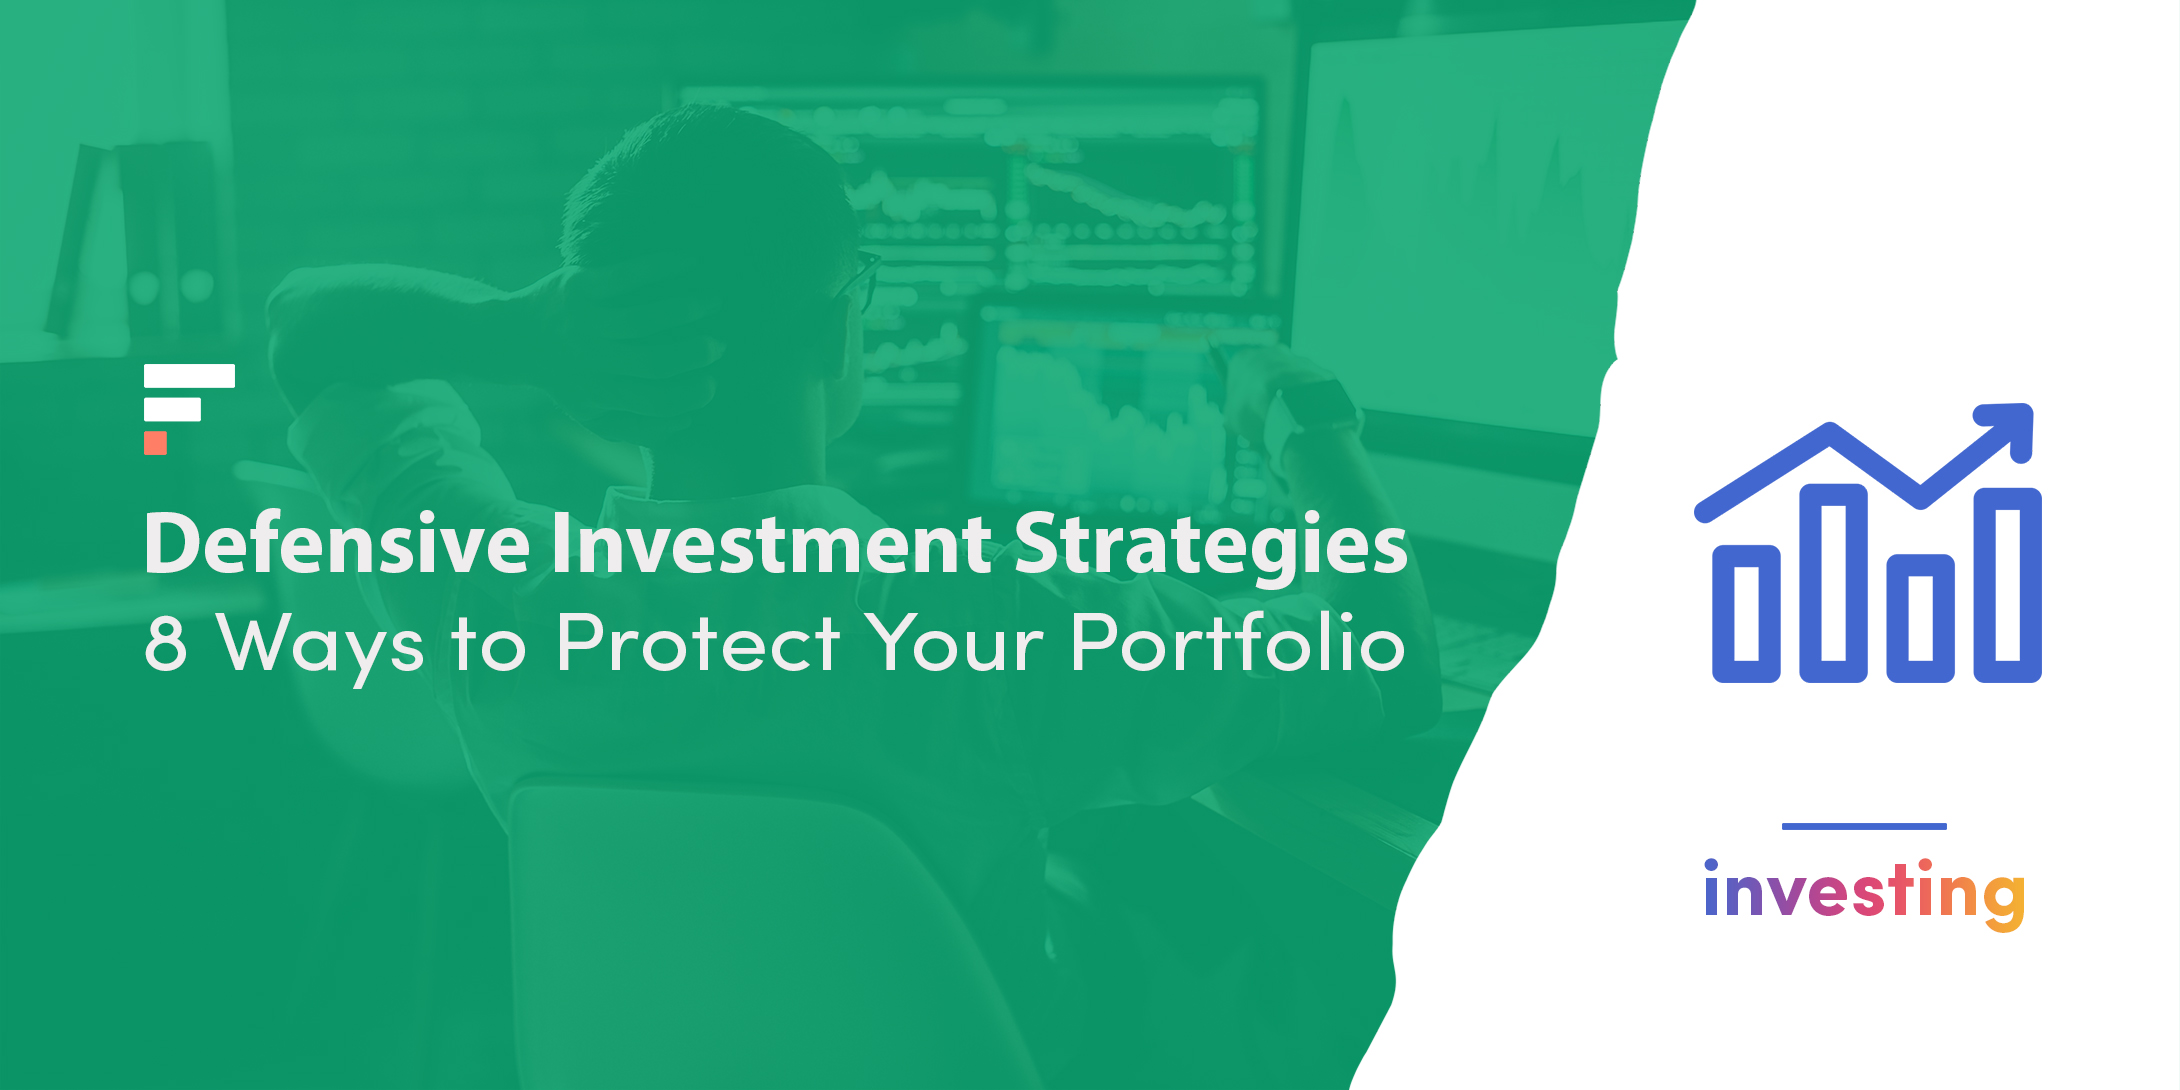 Defensive investment strategies